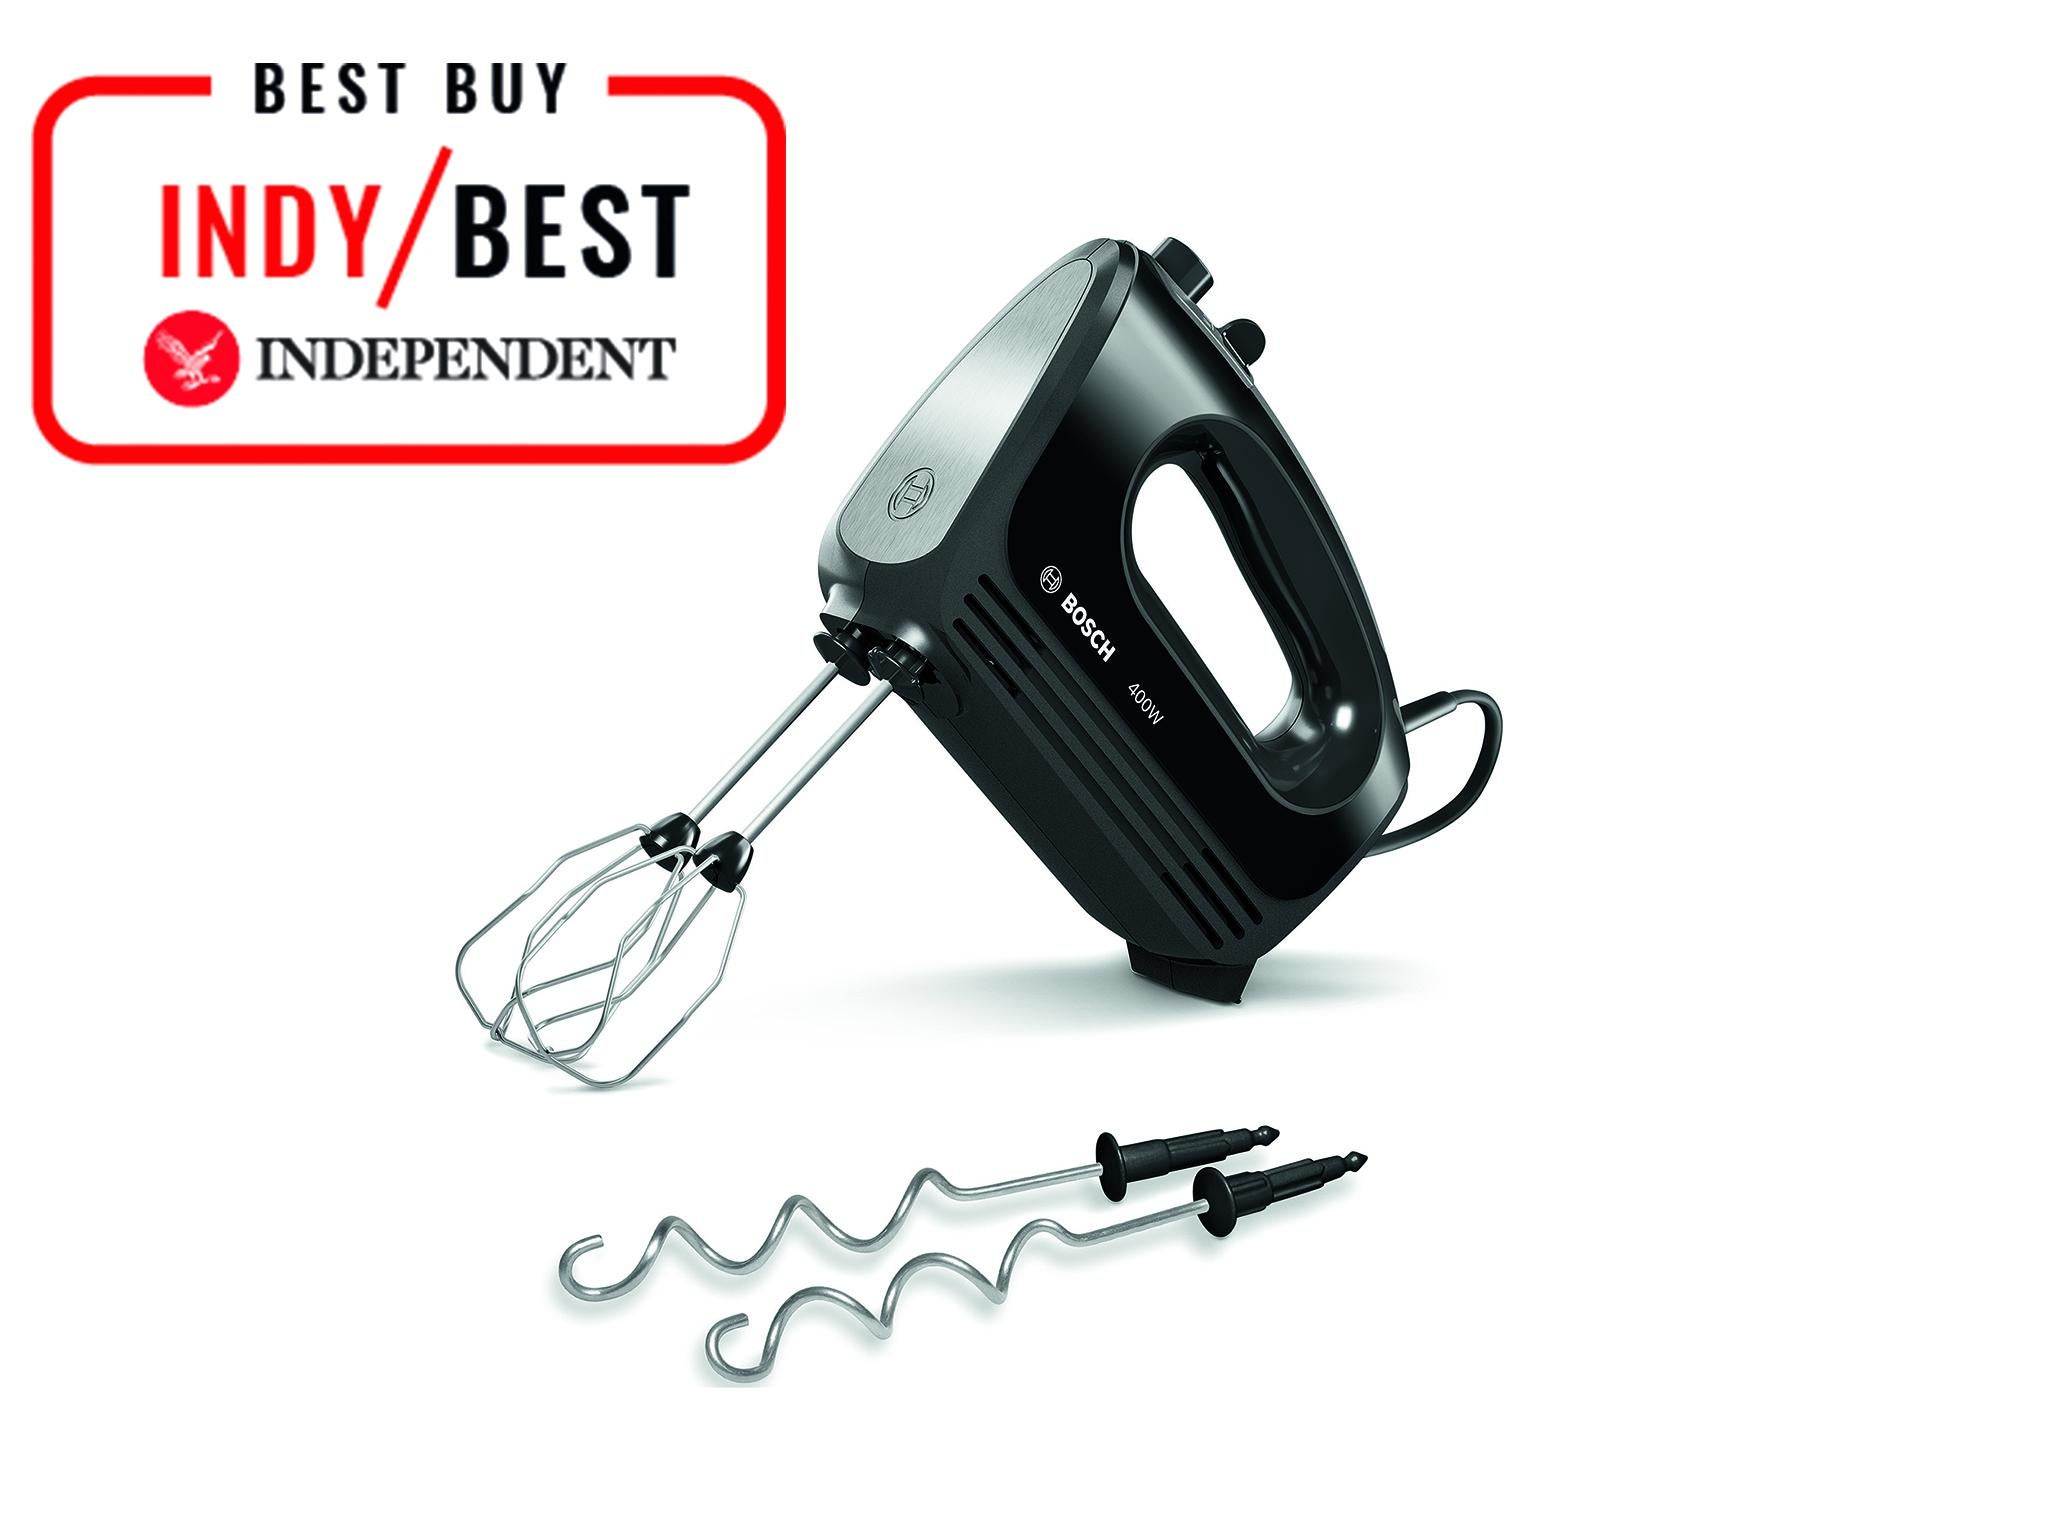 9 Best Hand Mixers The Independent 100 Circuit Science Kit Hobbycraft This